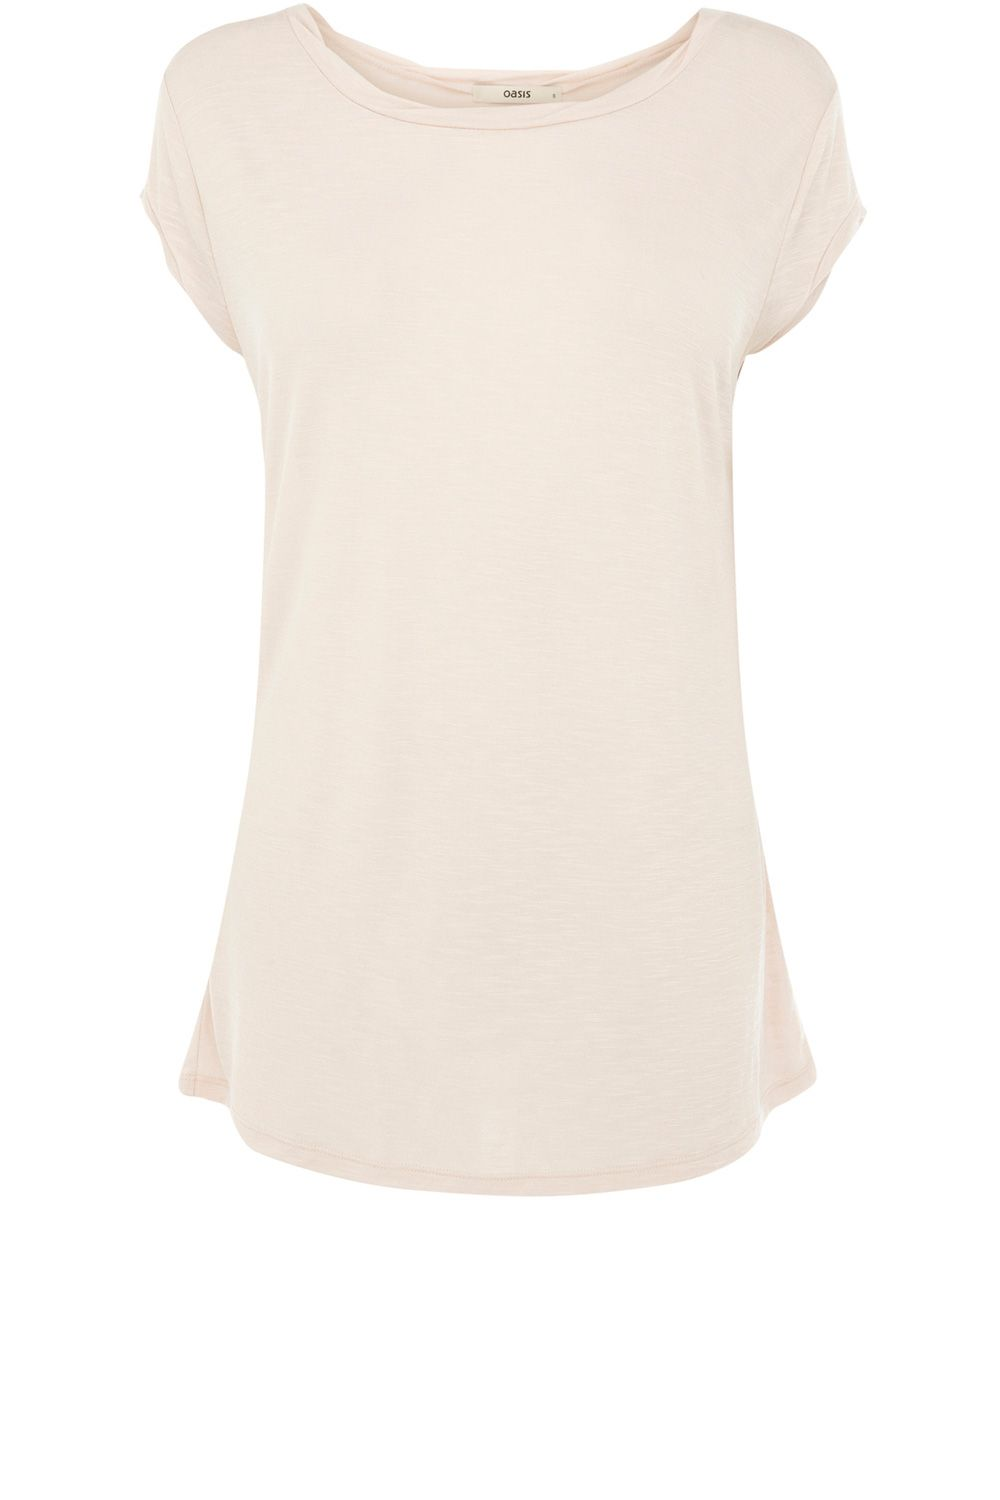 Oasis Basic twist neck tee, Pink